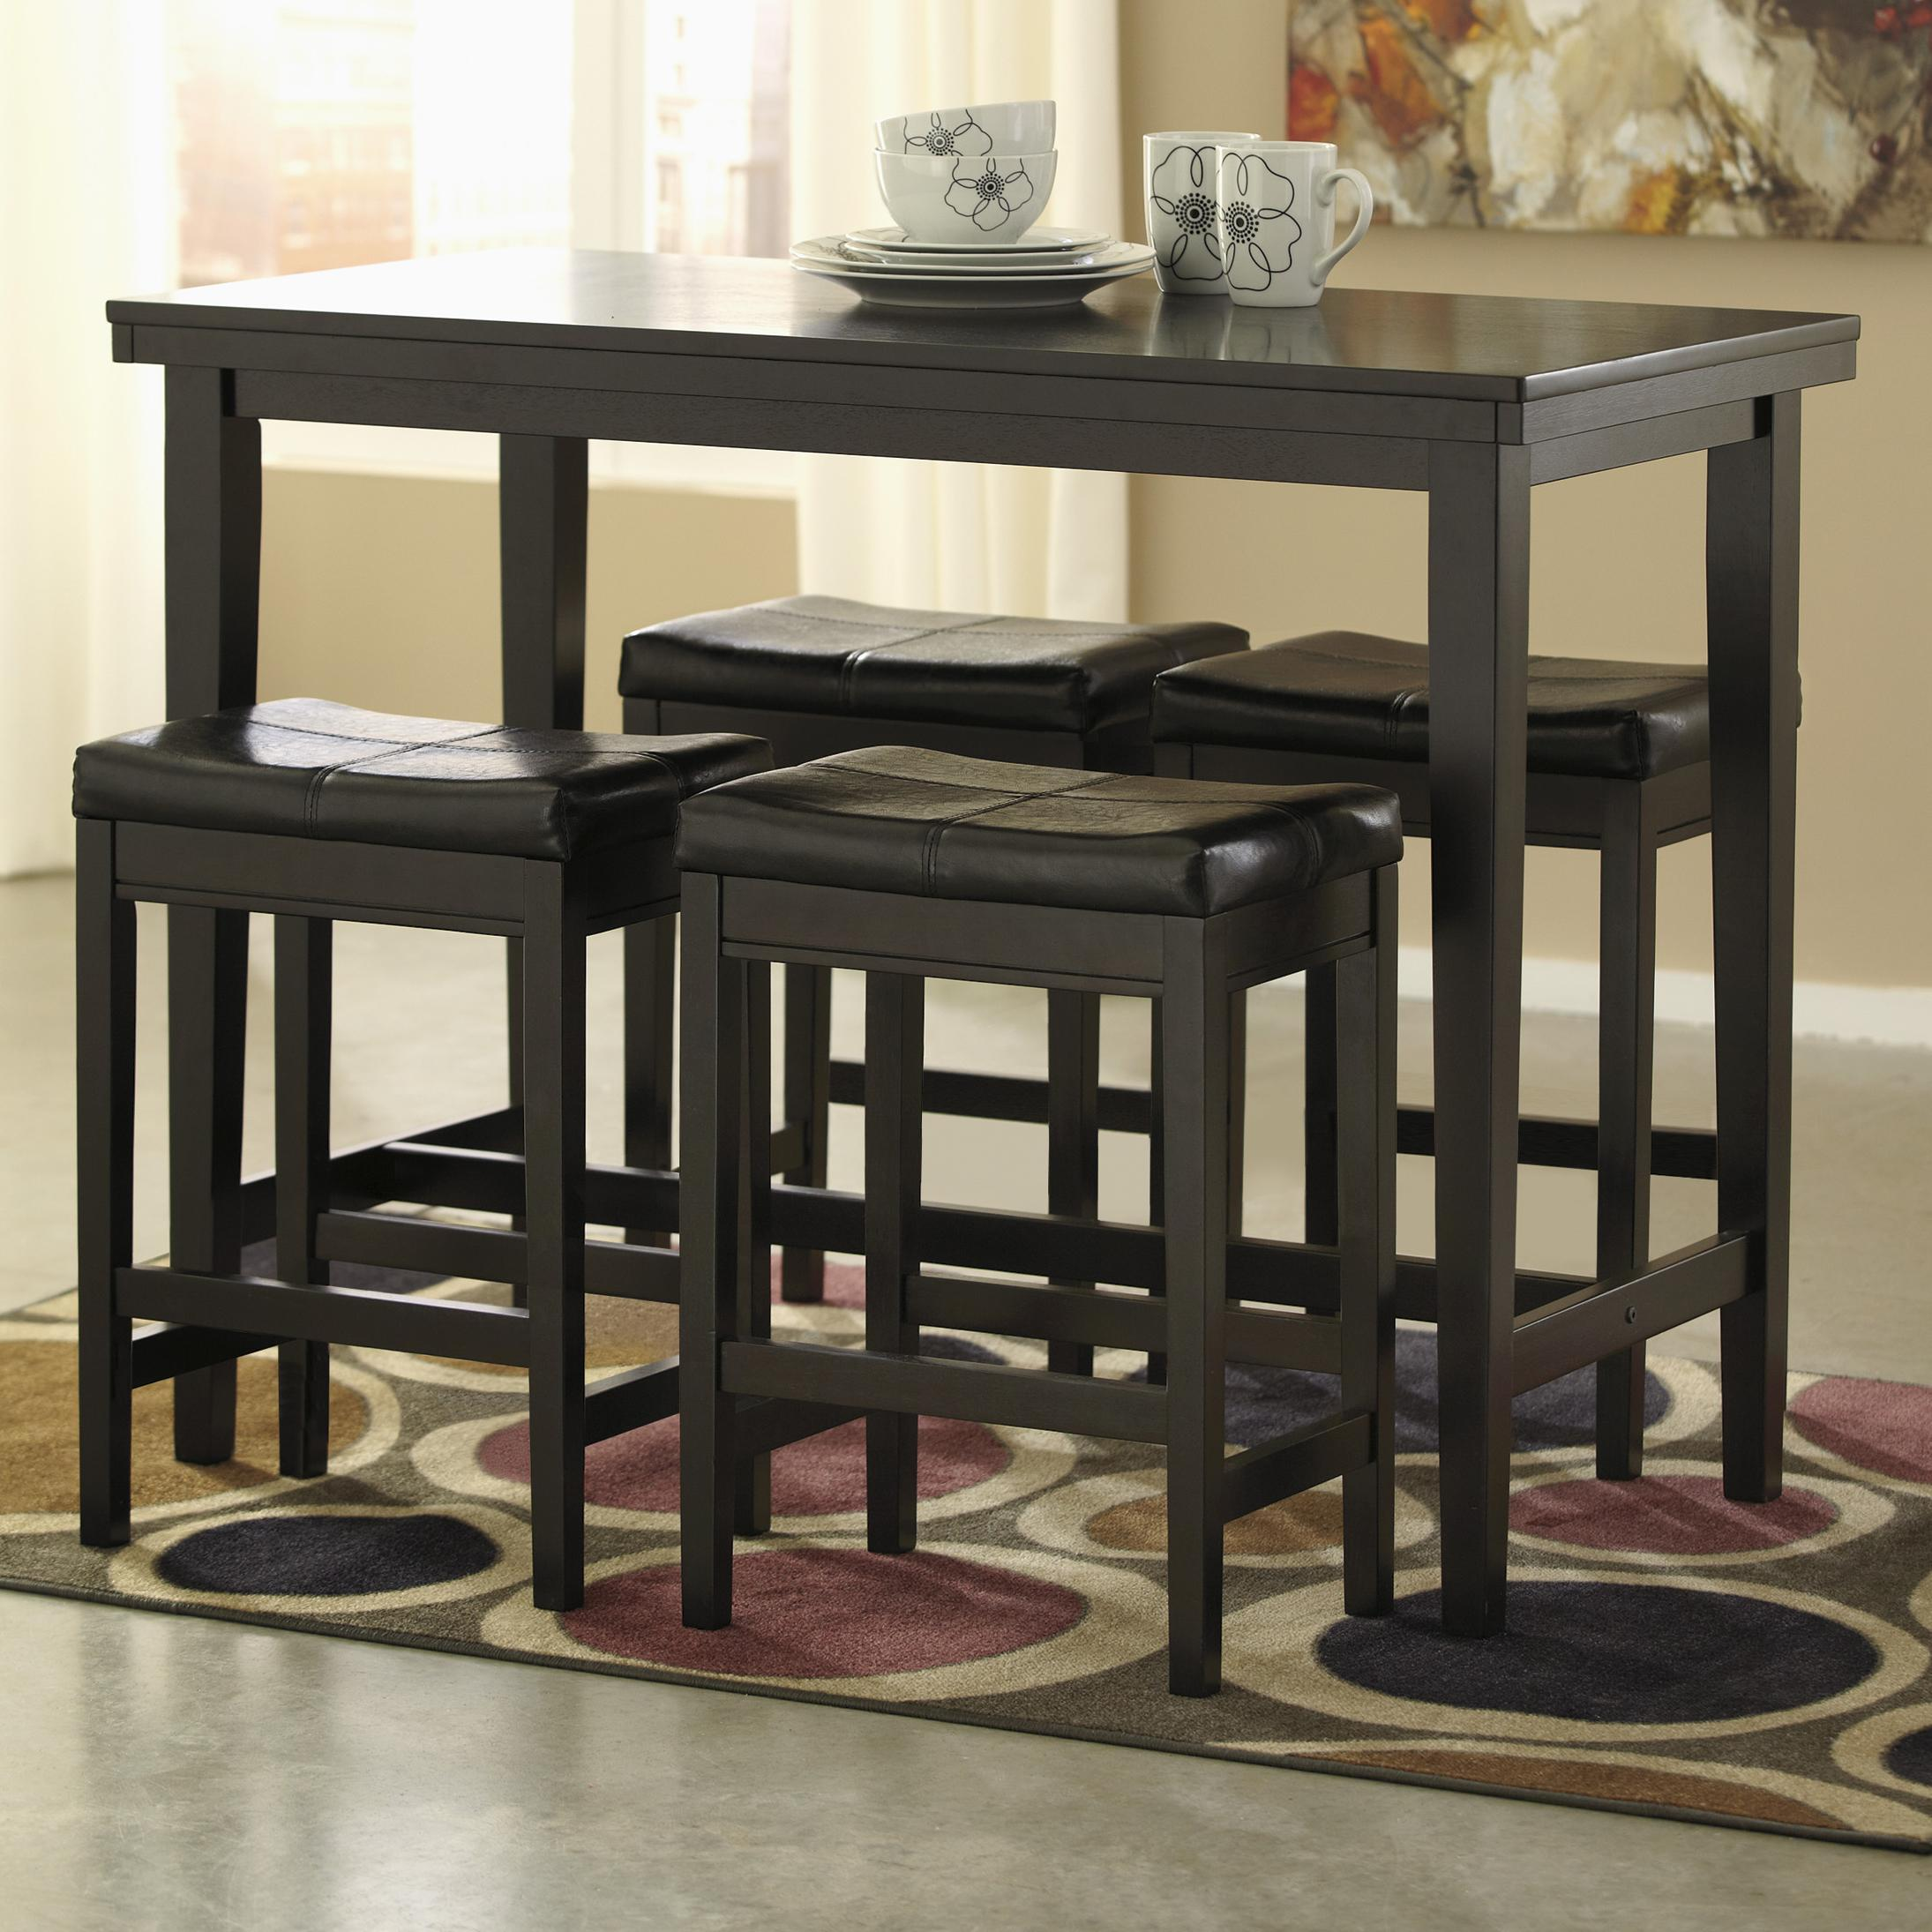 Bar Stools And Table Set 5 Piece Counter Table Set With Dark Brown Upholstered